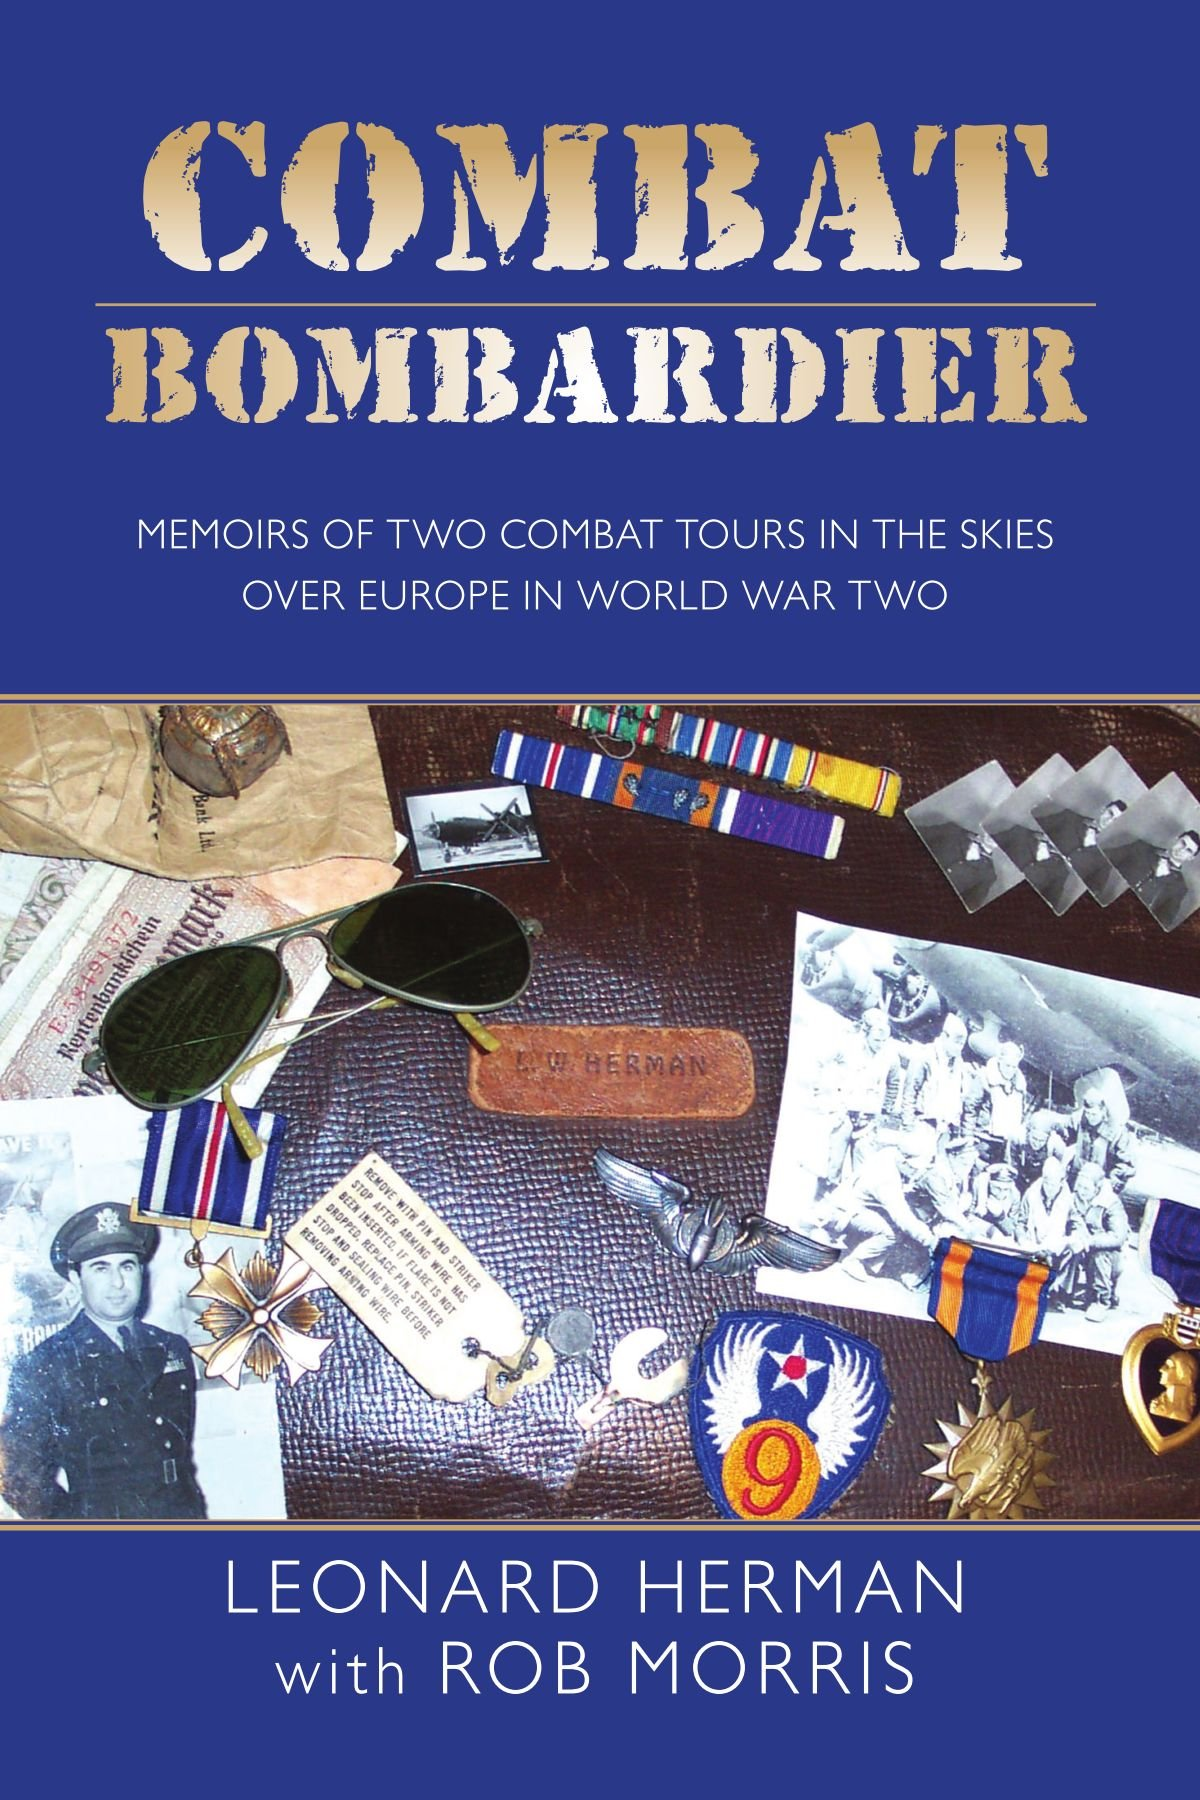 Download COMBAT BOMBARDIER: MEMOIRS OF TWO COMBAT TOURS IN THE SKIES OVER EUROPE IN WORLD WAR TWO ebook